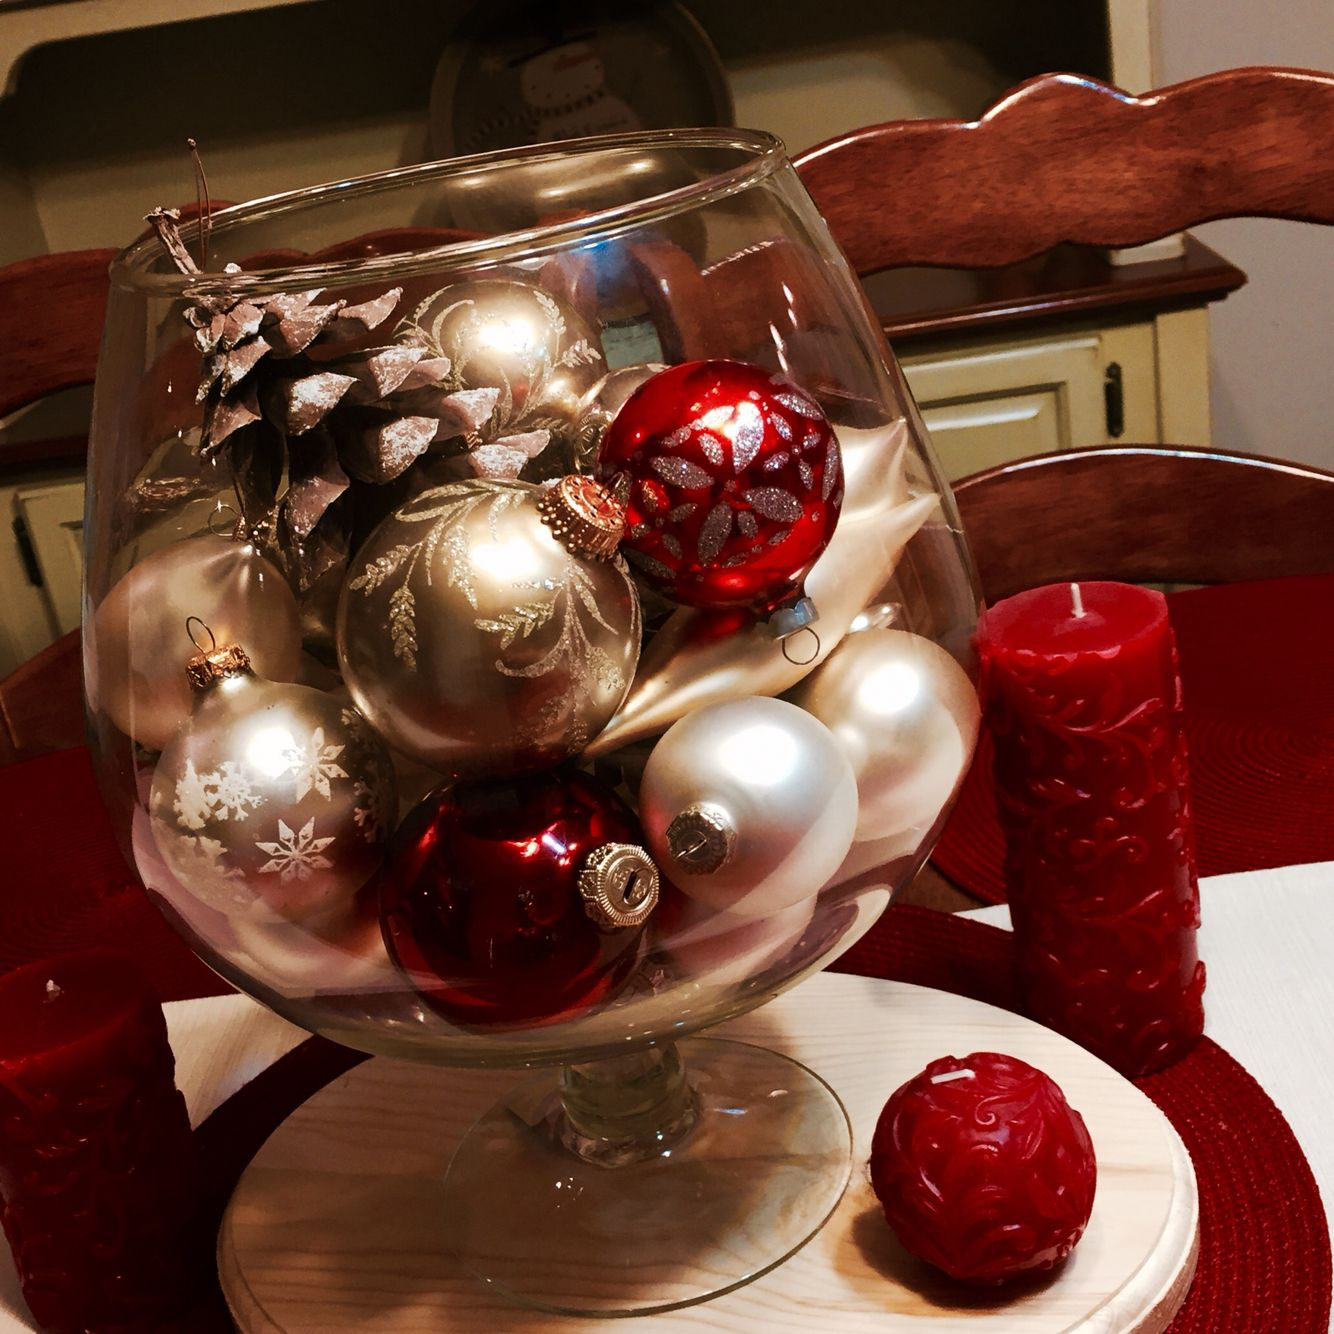 What To Put In A Glass Bowl For Decoration Love Decorating Glass Bowls With Ornaments And Pine Cones